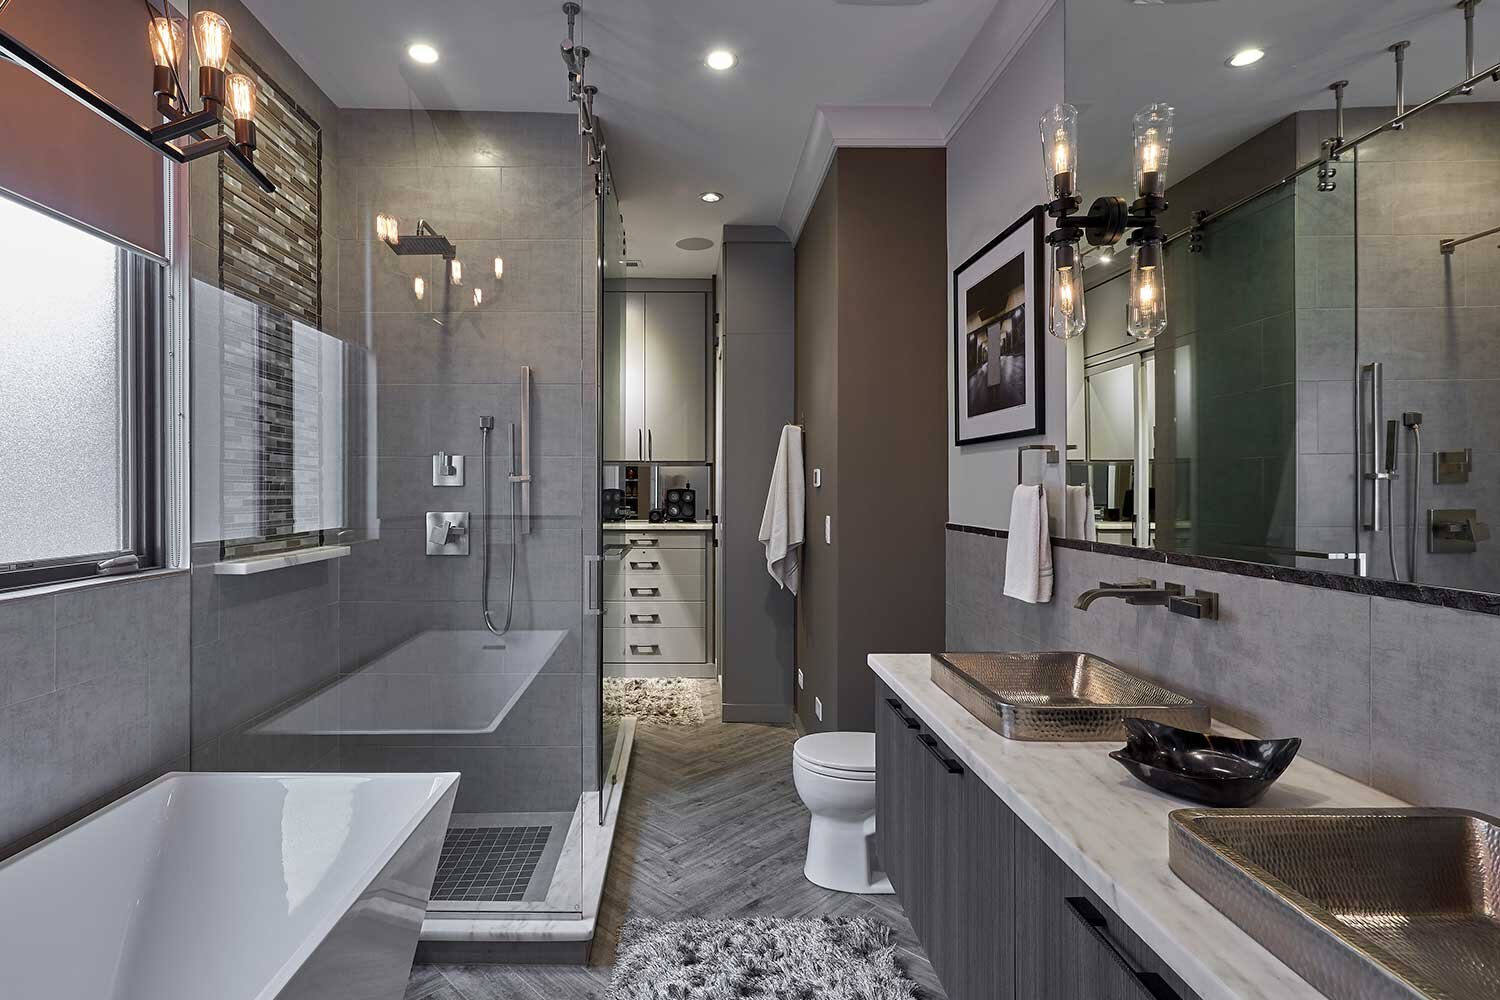 Bathroom Renovations 101 Steps Cost And What To Do First Mood Chicago Interior Design Build Firm